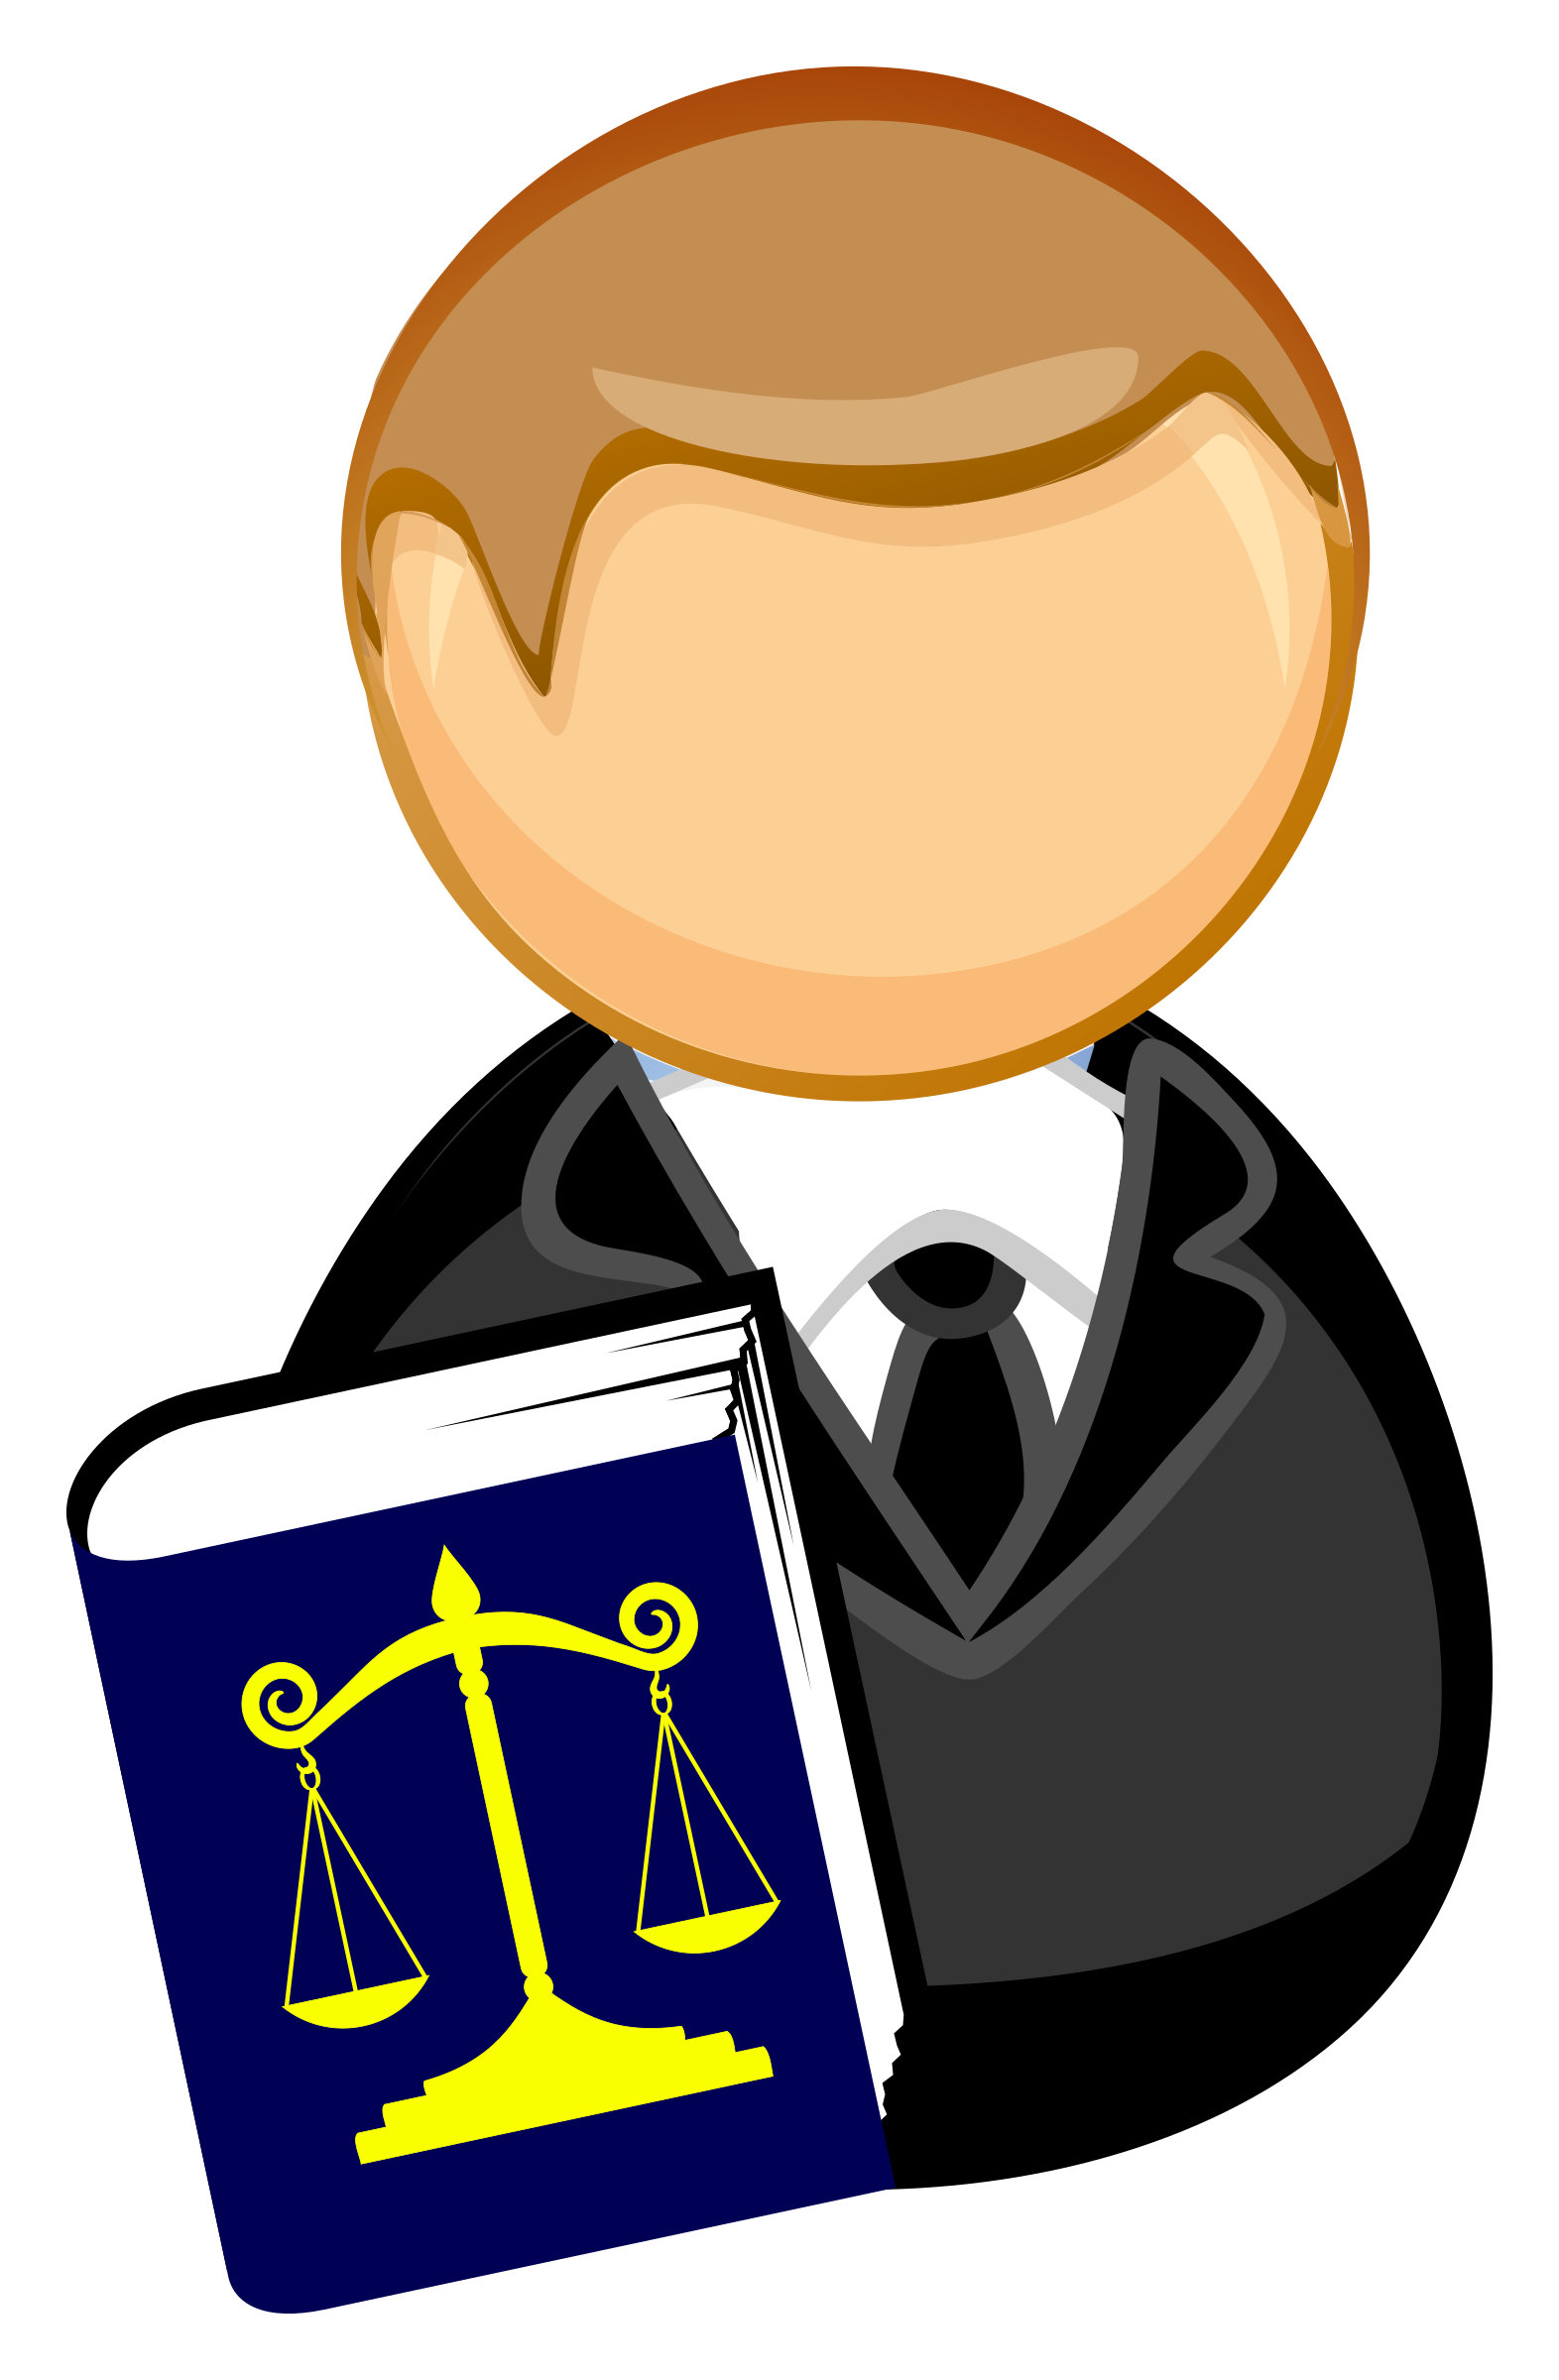 clipart lawyer rh openclipart org lawyer clip art cartoon lawyer clipart